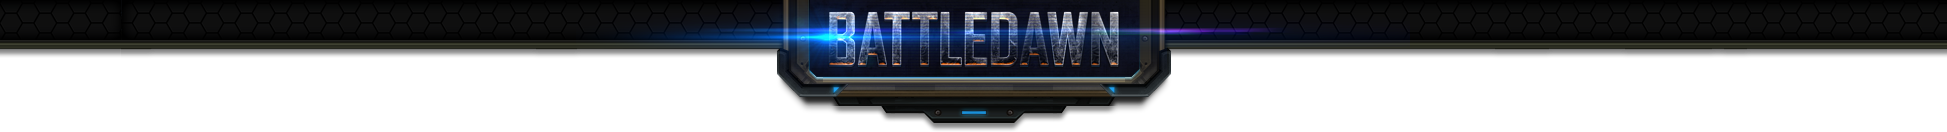 13 - BATTLE DAWN: IS A FREE MULTIPLAYER ONLINE GAME BASED ON STRATEGY, COMMUNITY AND SKILL. USING EVERYTHING FROM DIPLOMACY TO WAR, YOU MUST STRIVE TO BUILD AN EMPIRE.